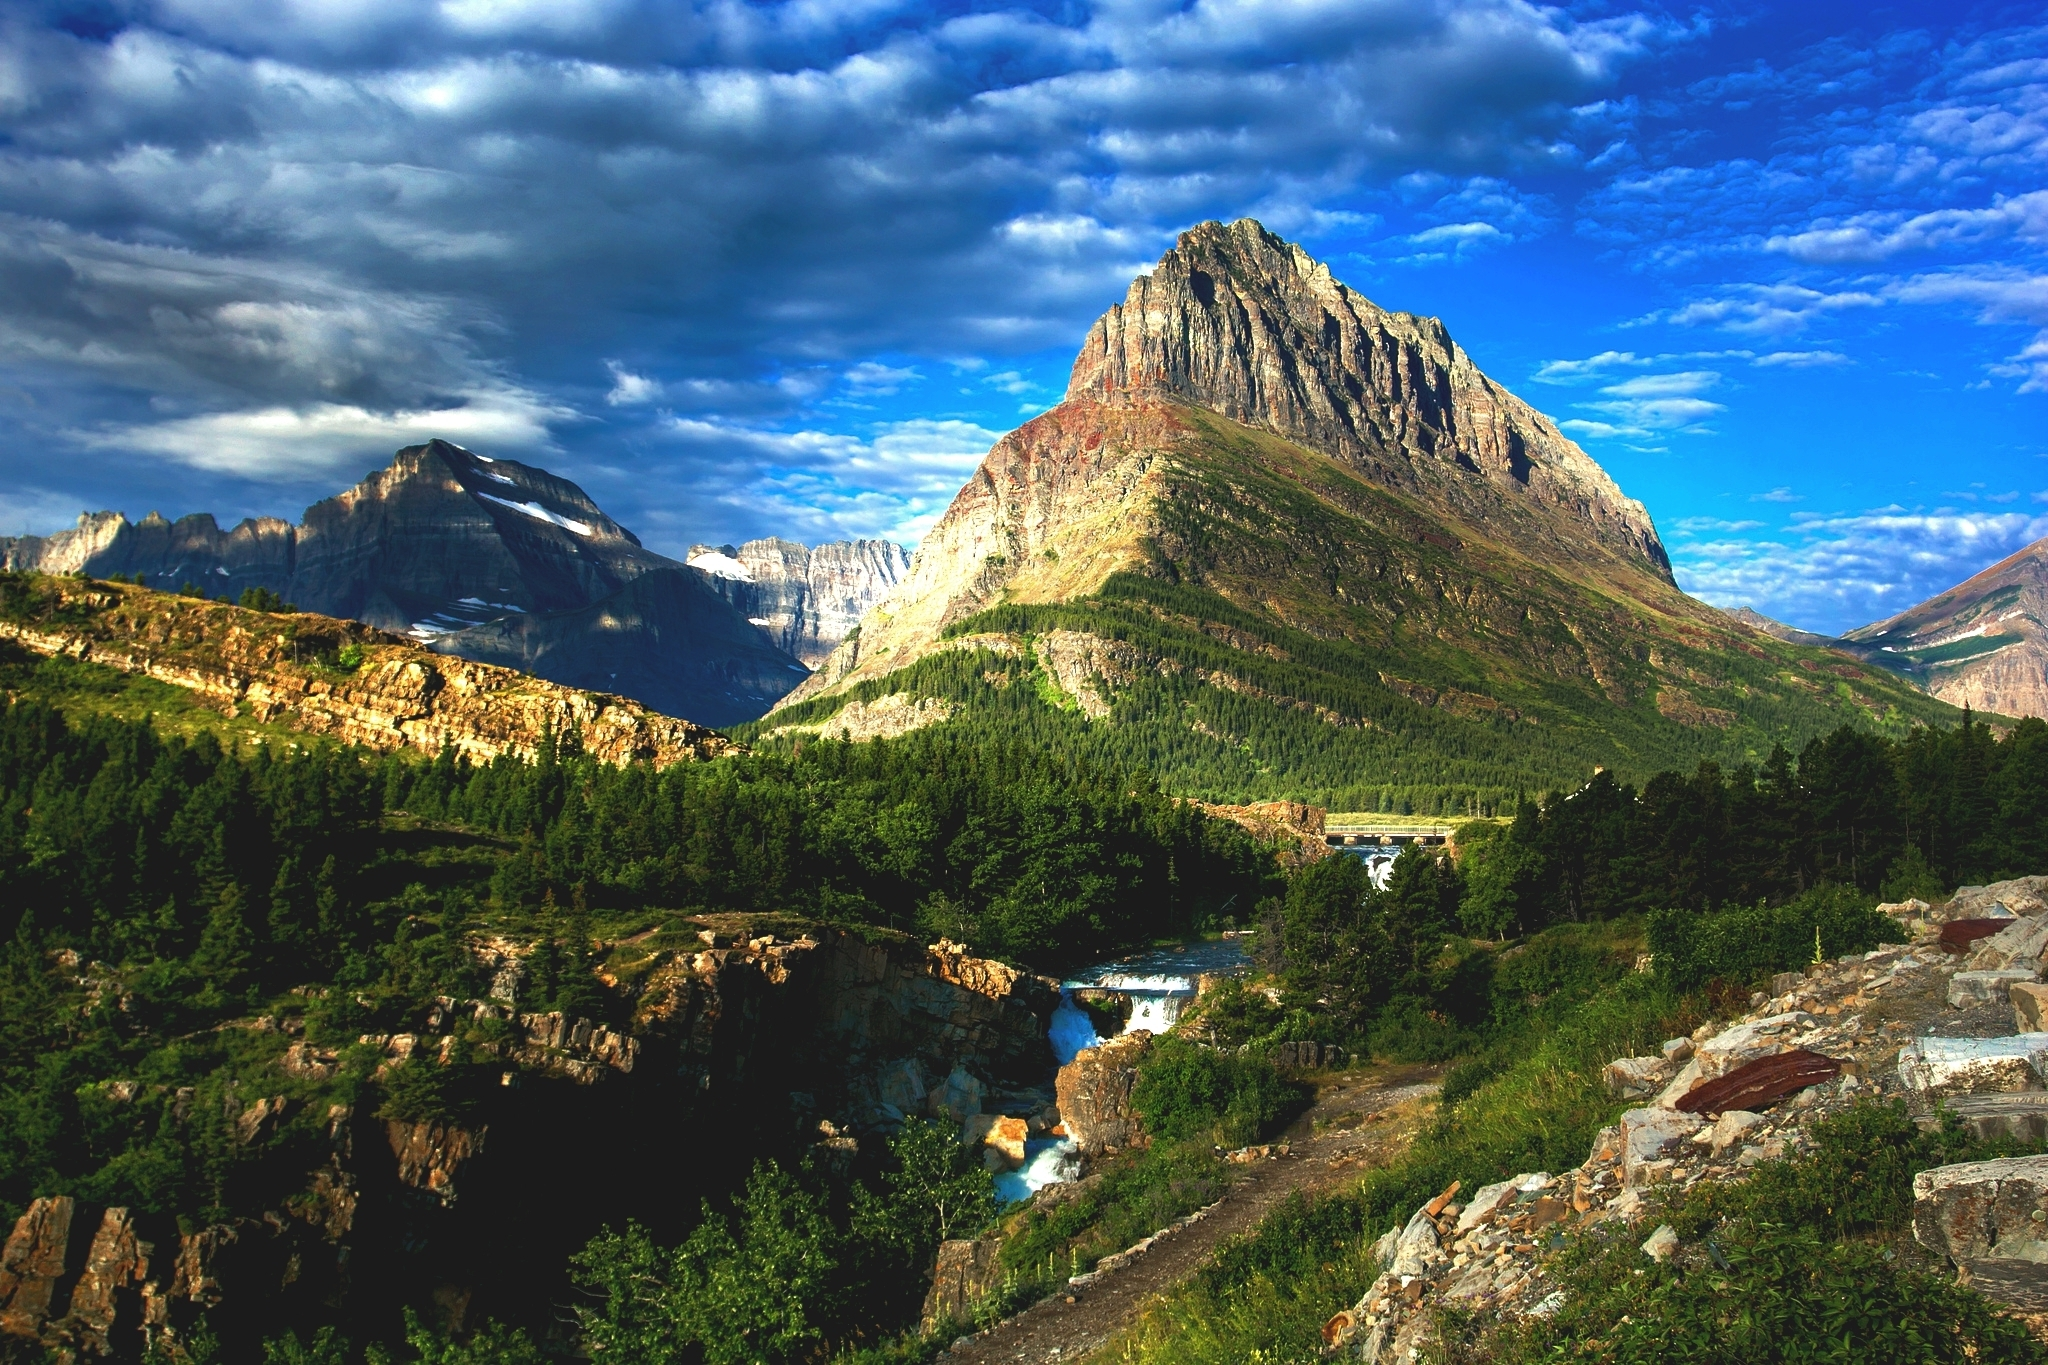 glacier national park wallpapers, widescreen wallpapers of glacier